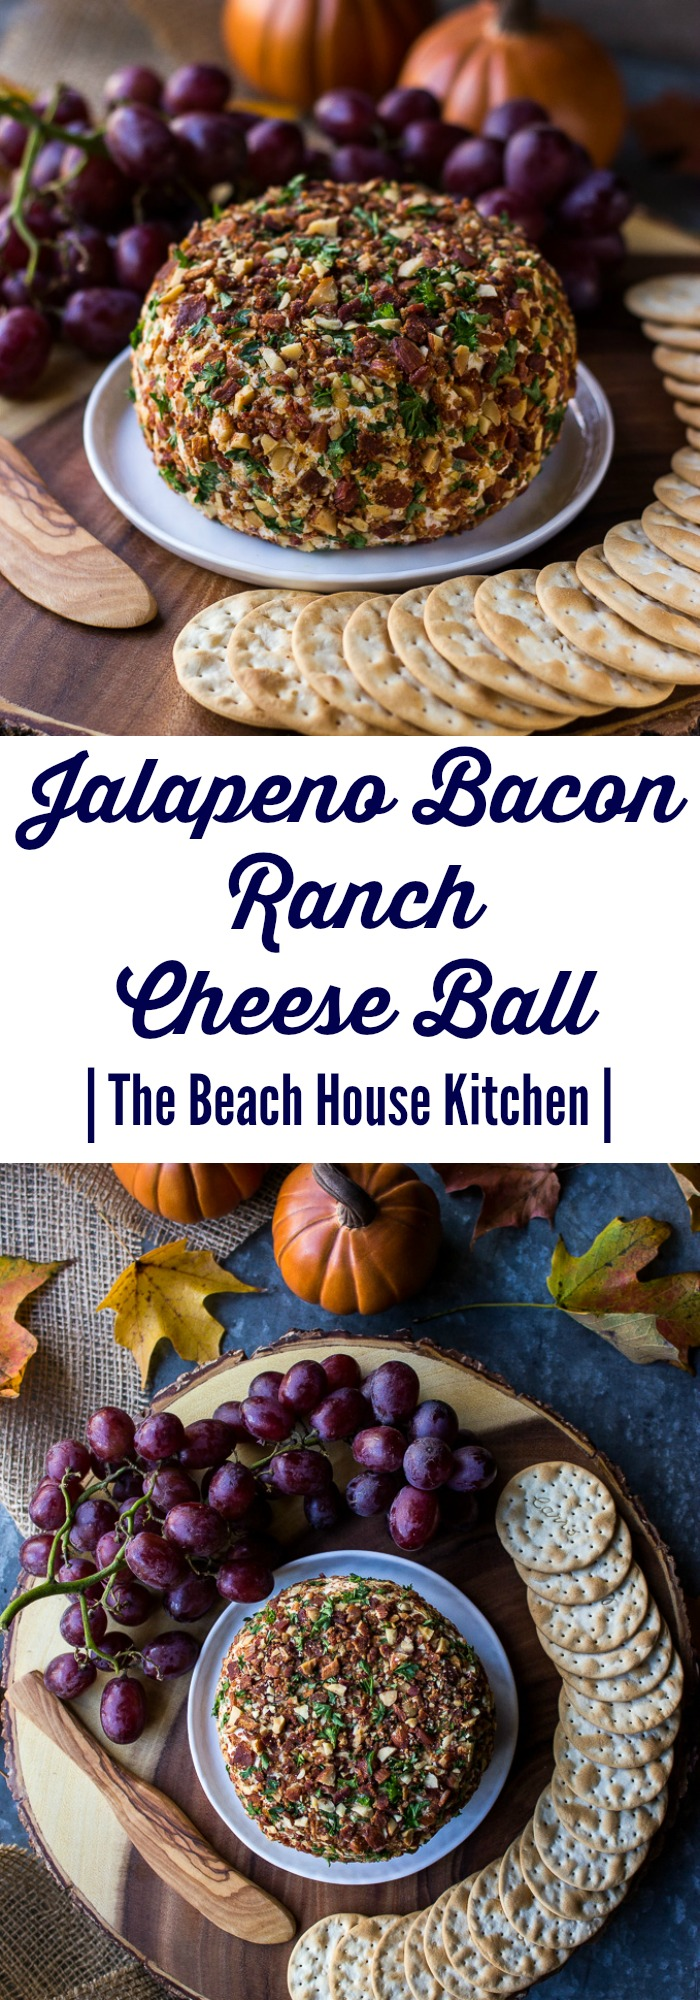 Jalapeno Bacon Ranch Cheese Ball